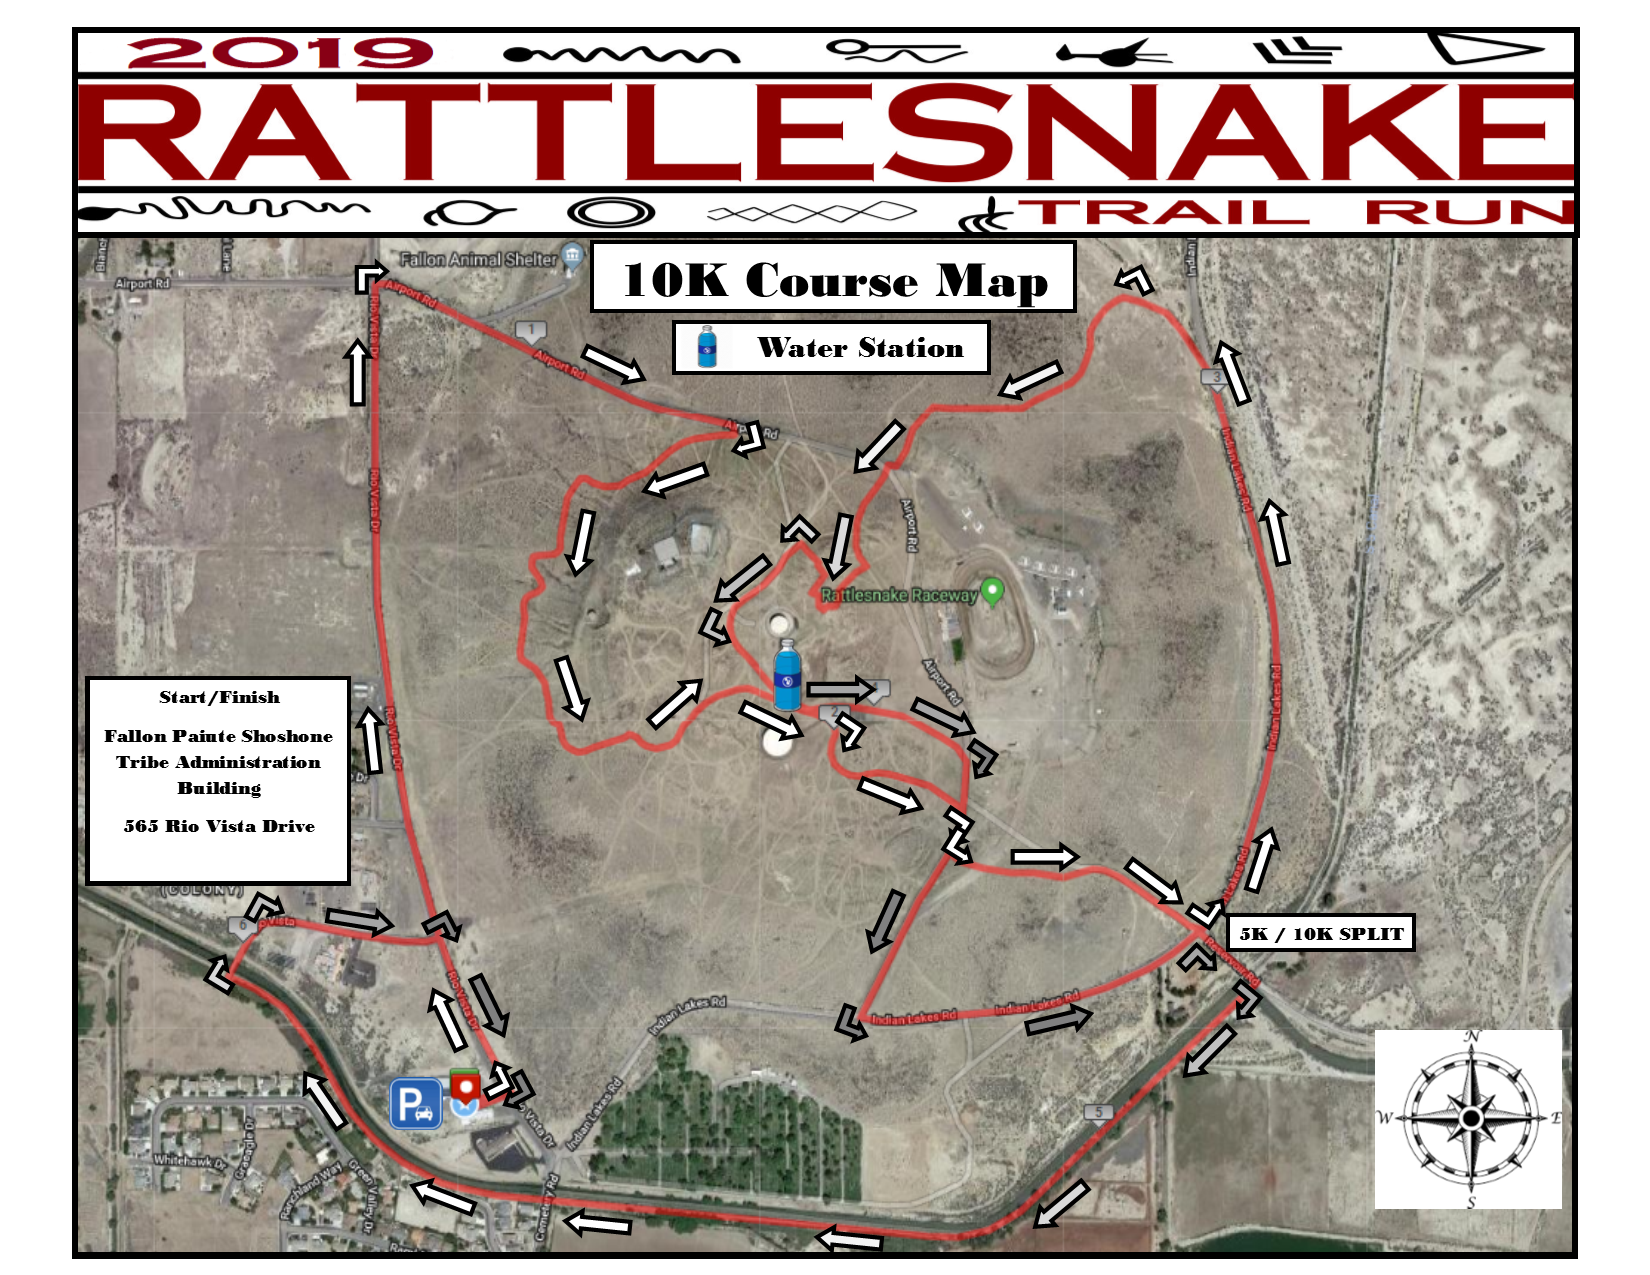 Rattlesnake Trail Run (2019) - 10K Course Map.png